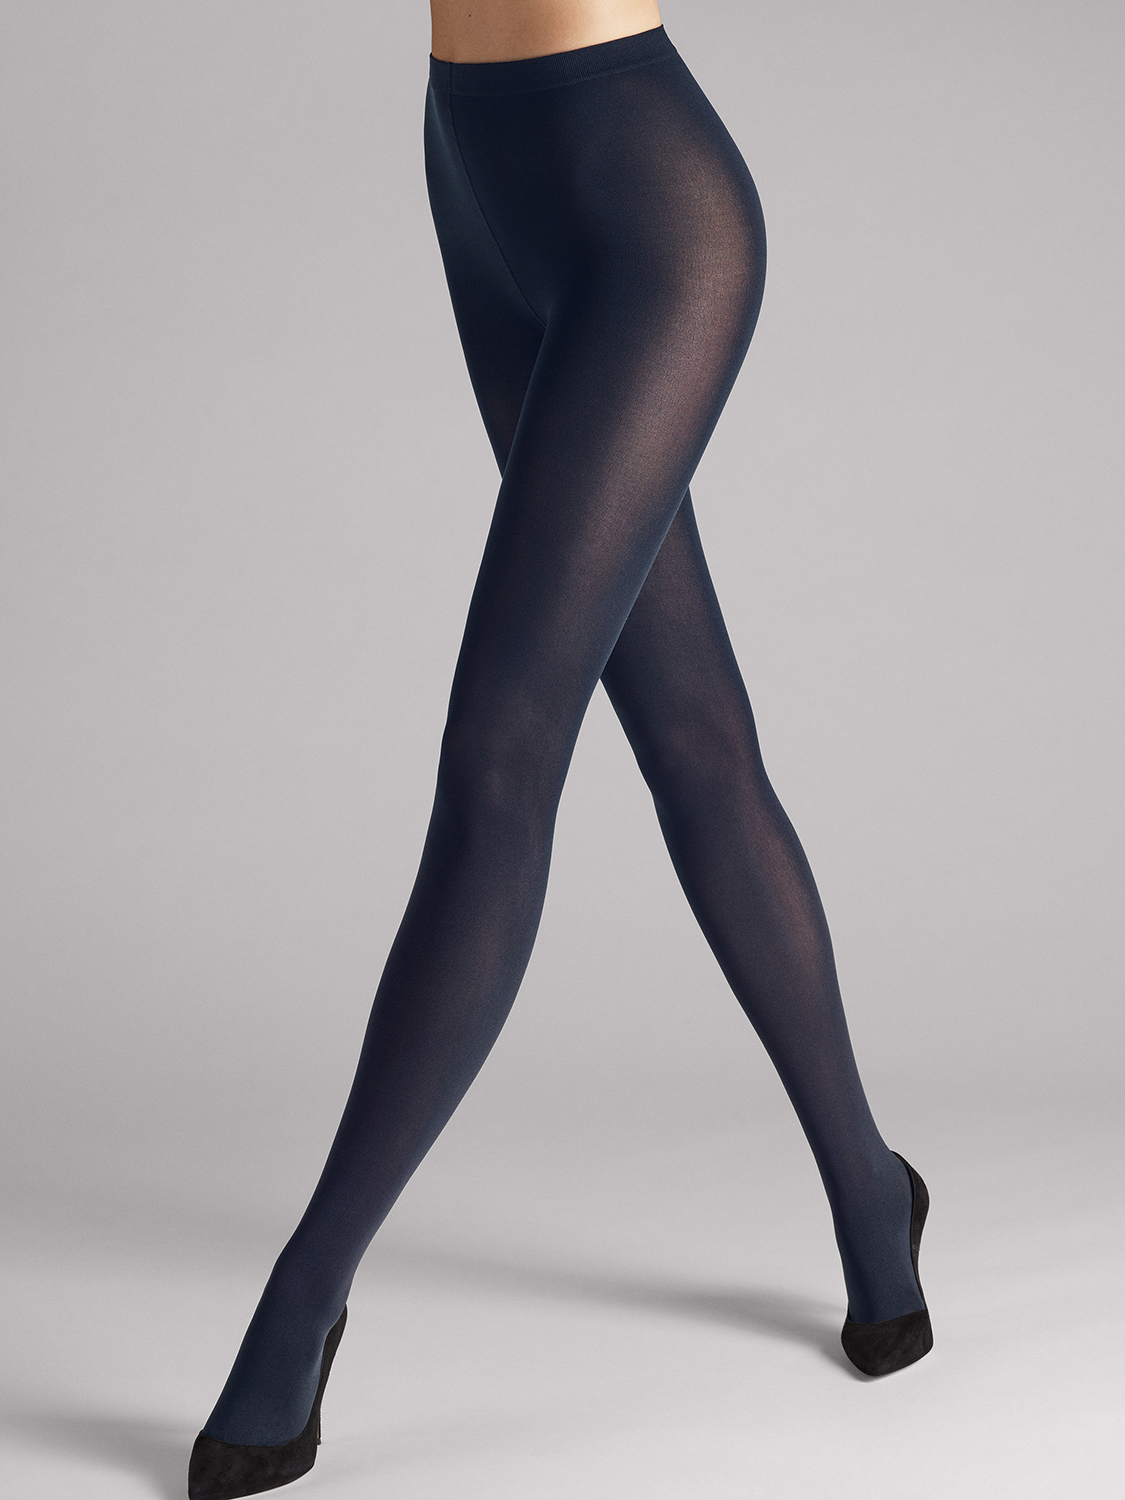 Колготы velvet de luxe 66 tights фото